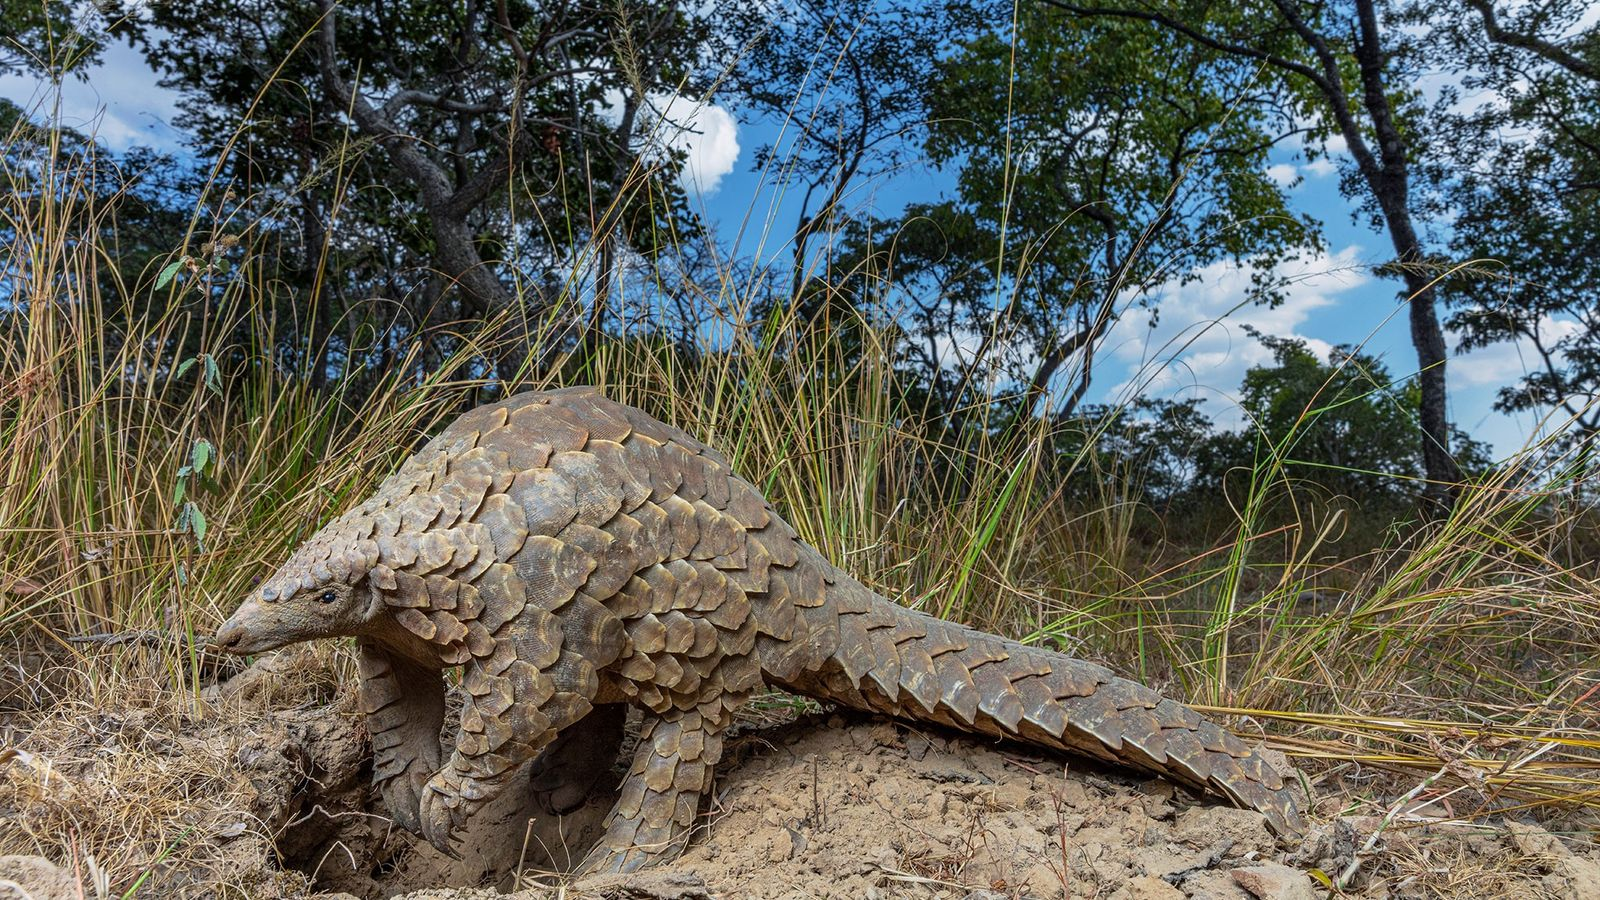 Pangolins, which look like scaly anteaters, are coveted for use in traditional Chinese medicine.